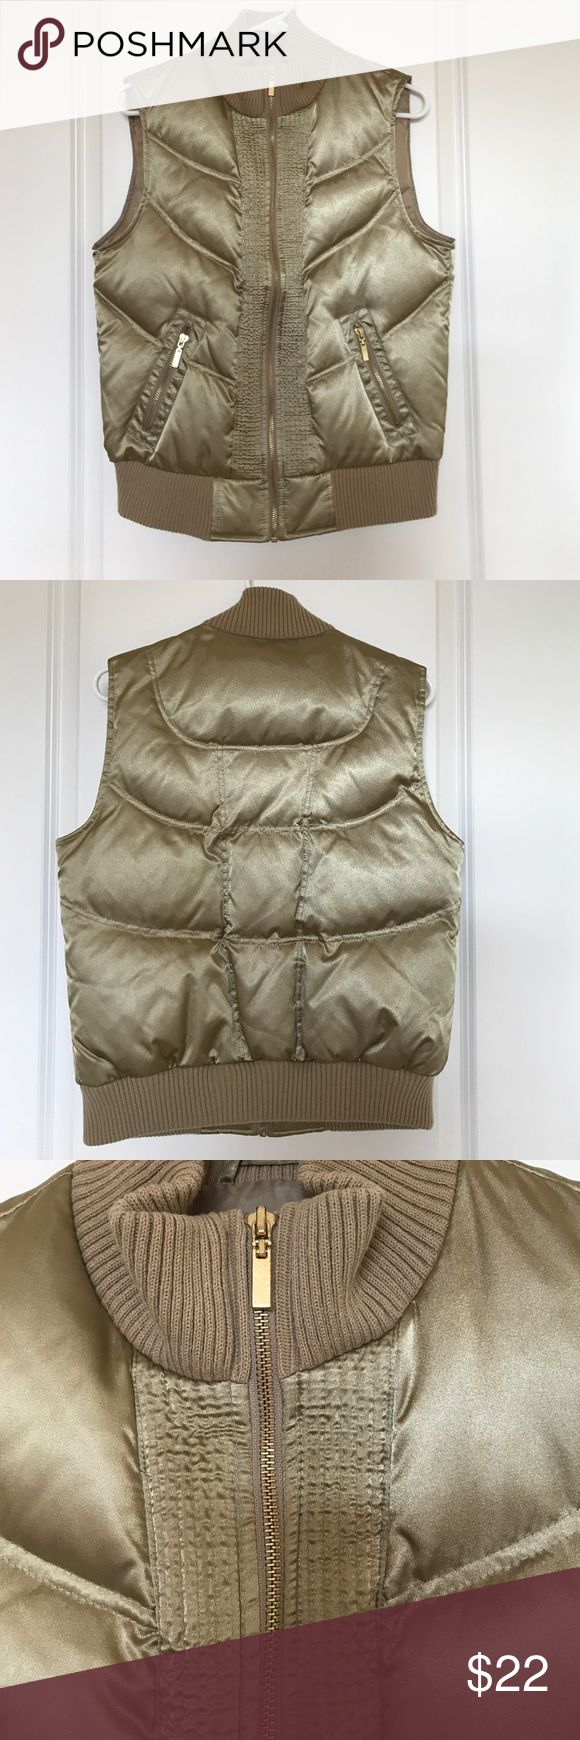 """Style & Co Sport gold vest Style & Co Sport gold metallic vest. Gold zipper detail. Great condition. Bust below arms measures 19"""". From shoulder to bottom hem measures 23"""". Style & Co Jackets & Coats Vests"""